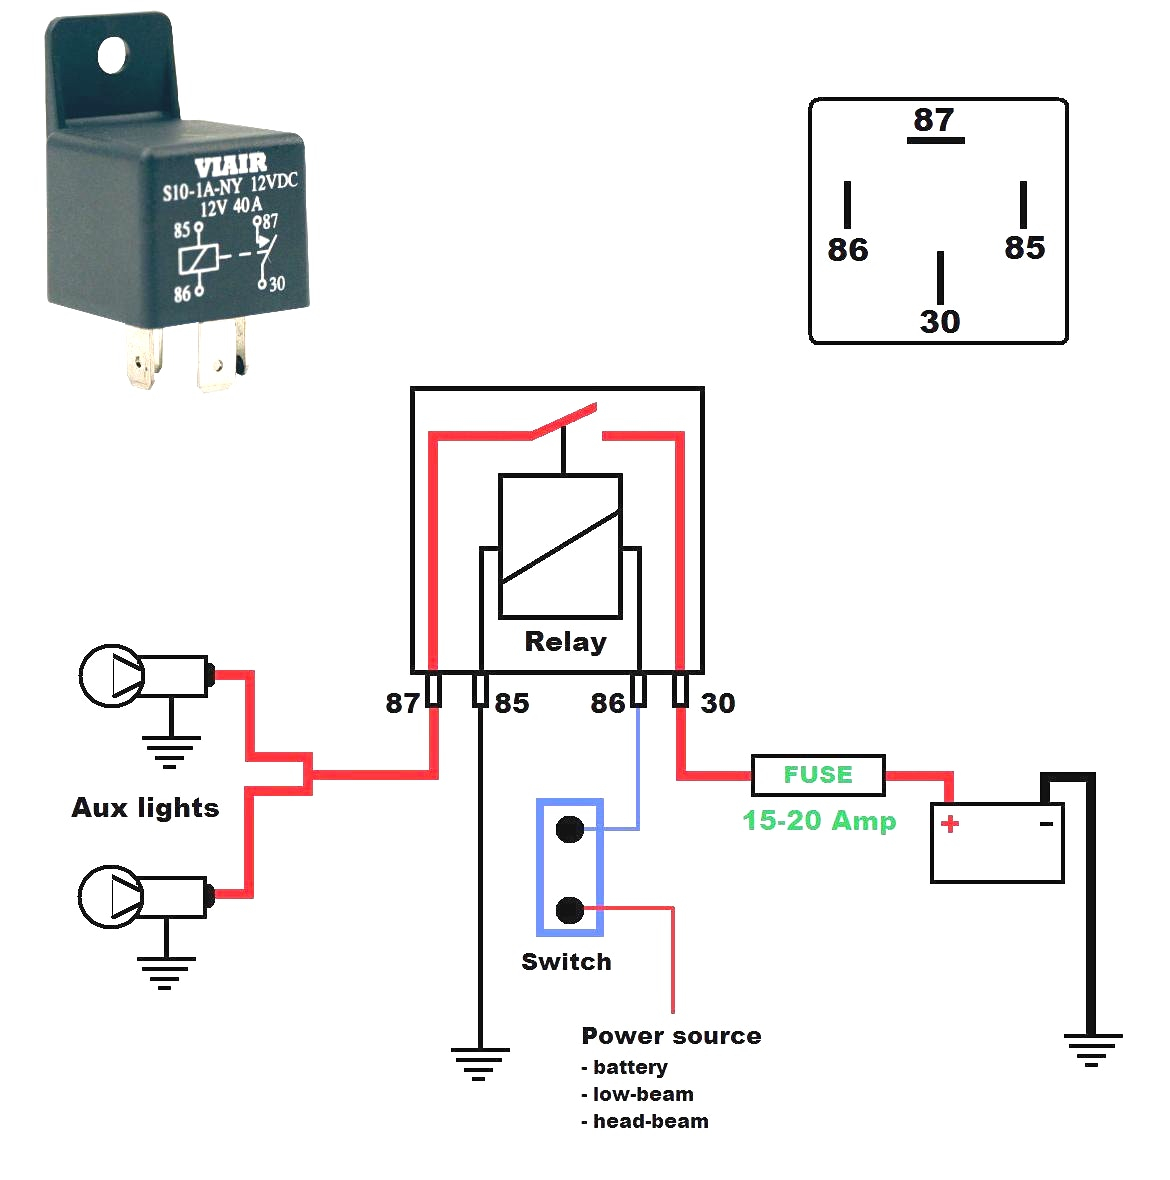 12v relay wiring diagram spotlights Download-12V Relay Wiring Diagram  Stylesync Me And Bosch 4